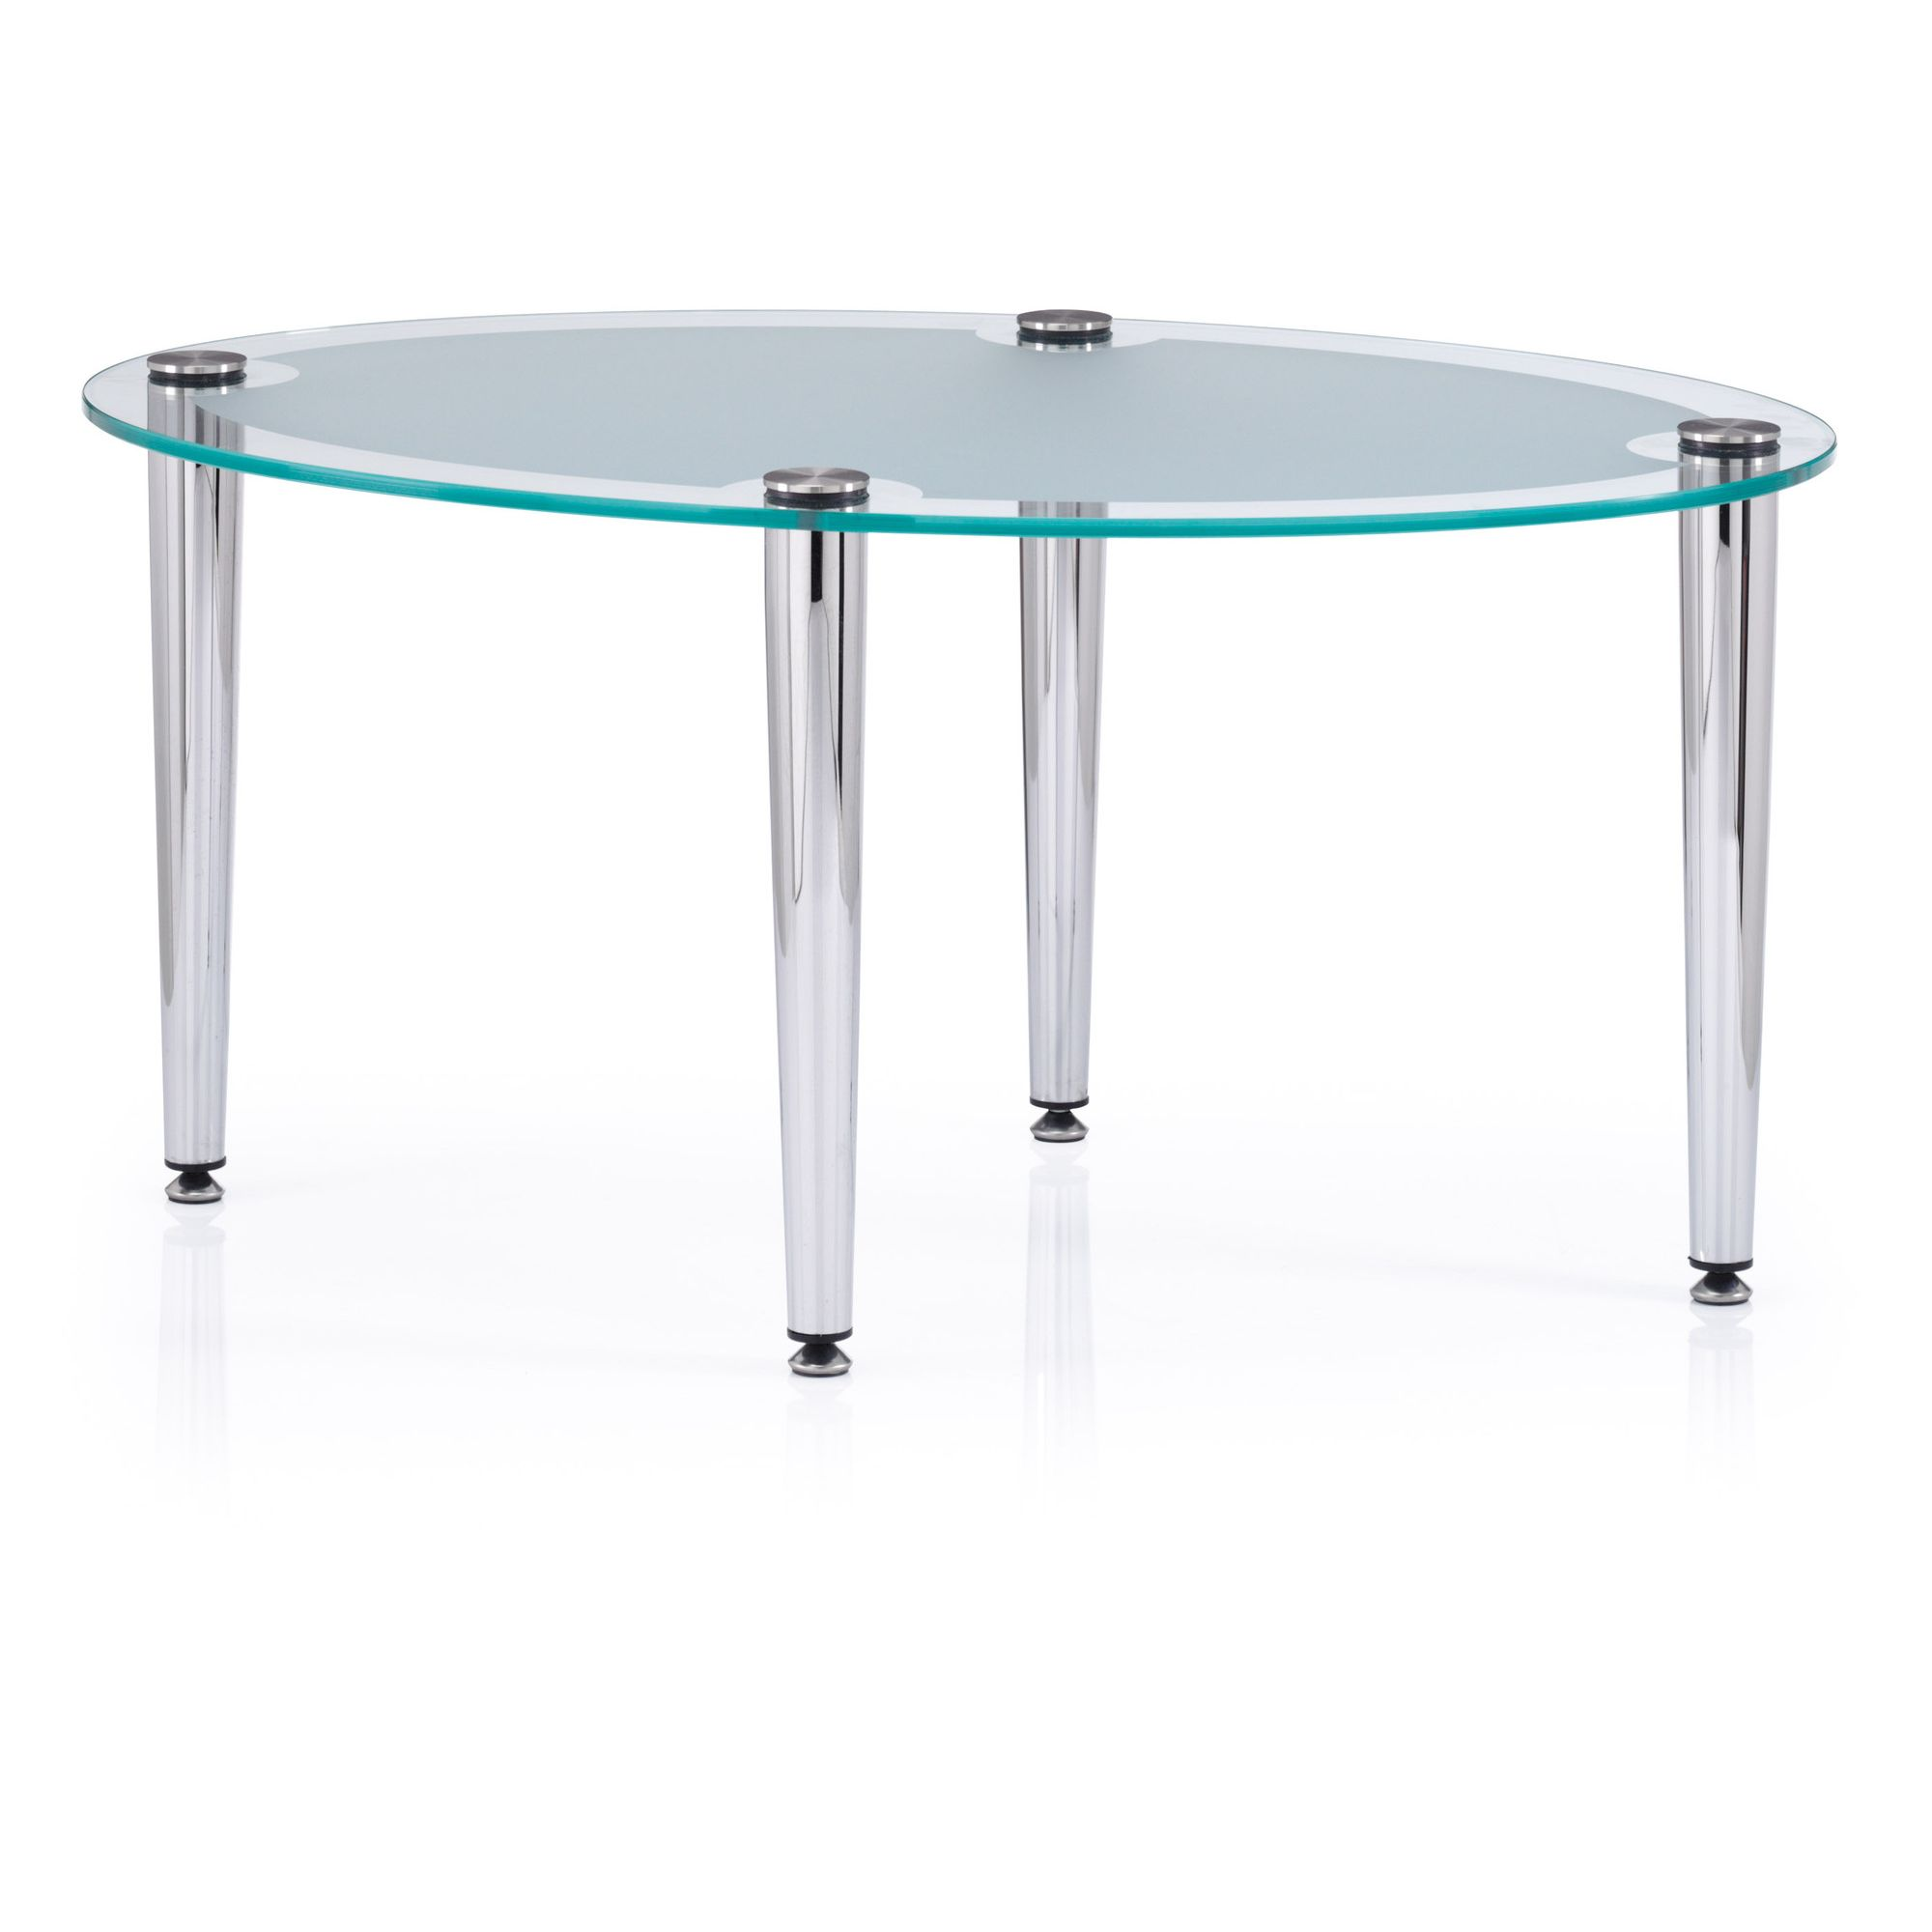 Ocee Design GT Oval Table at Tescos Direct